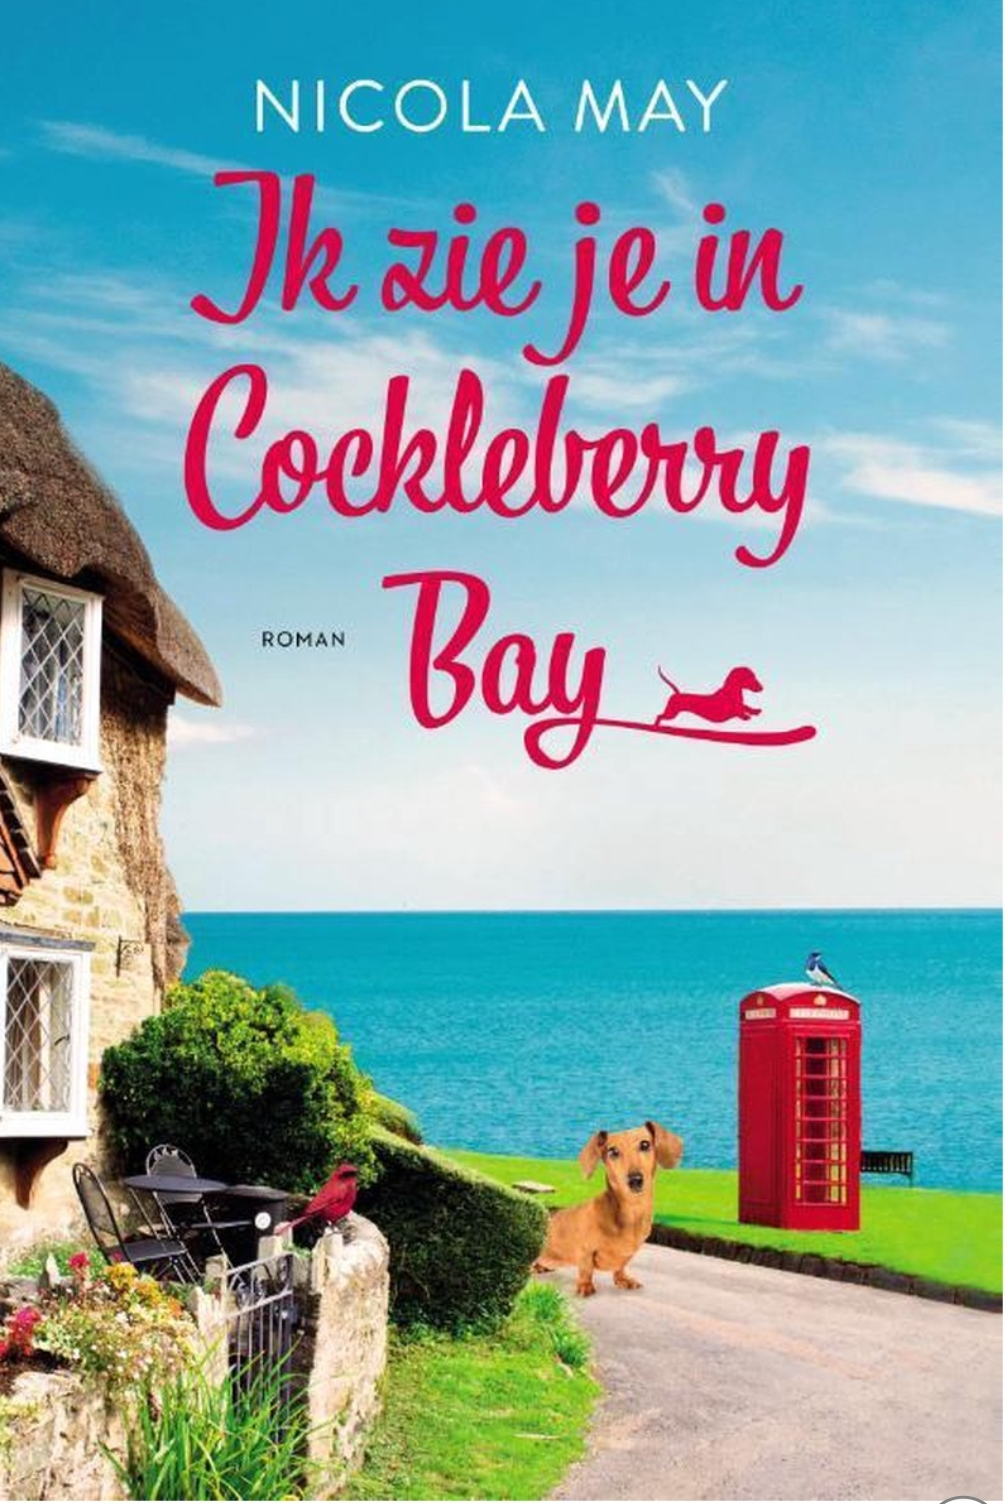 Ik zie je in Cockleberry Bay - kaft